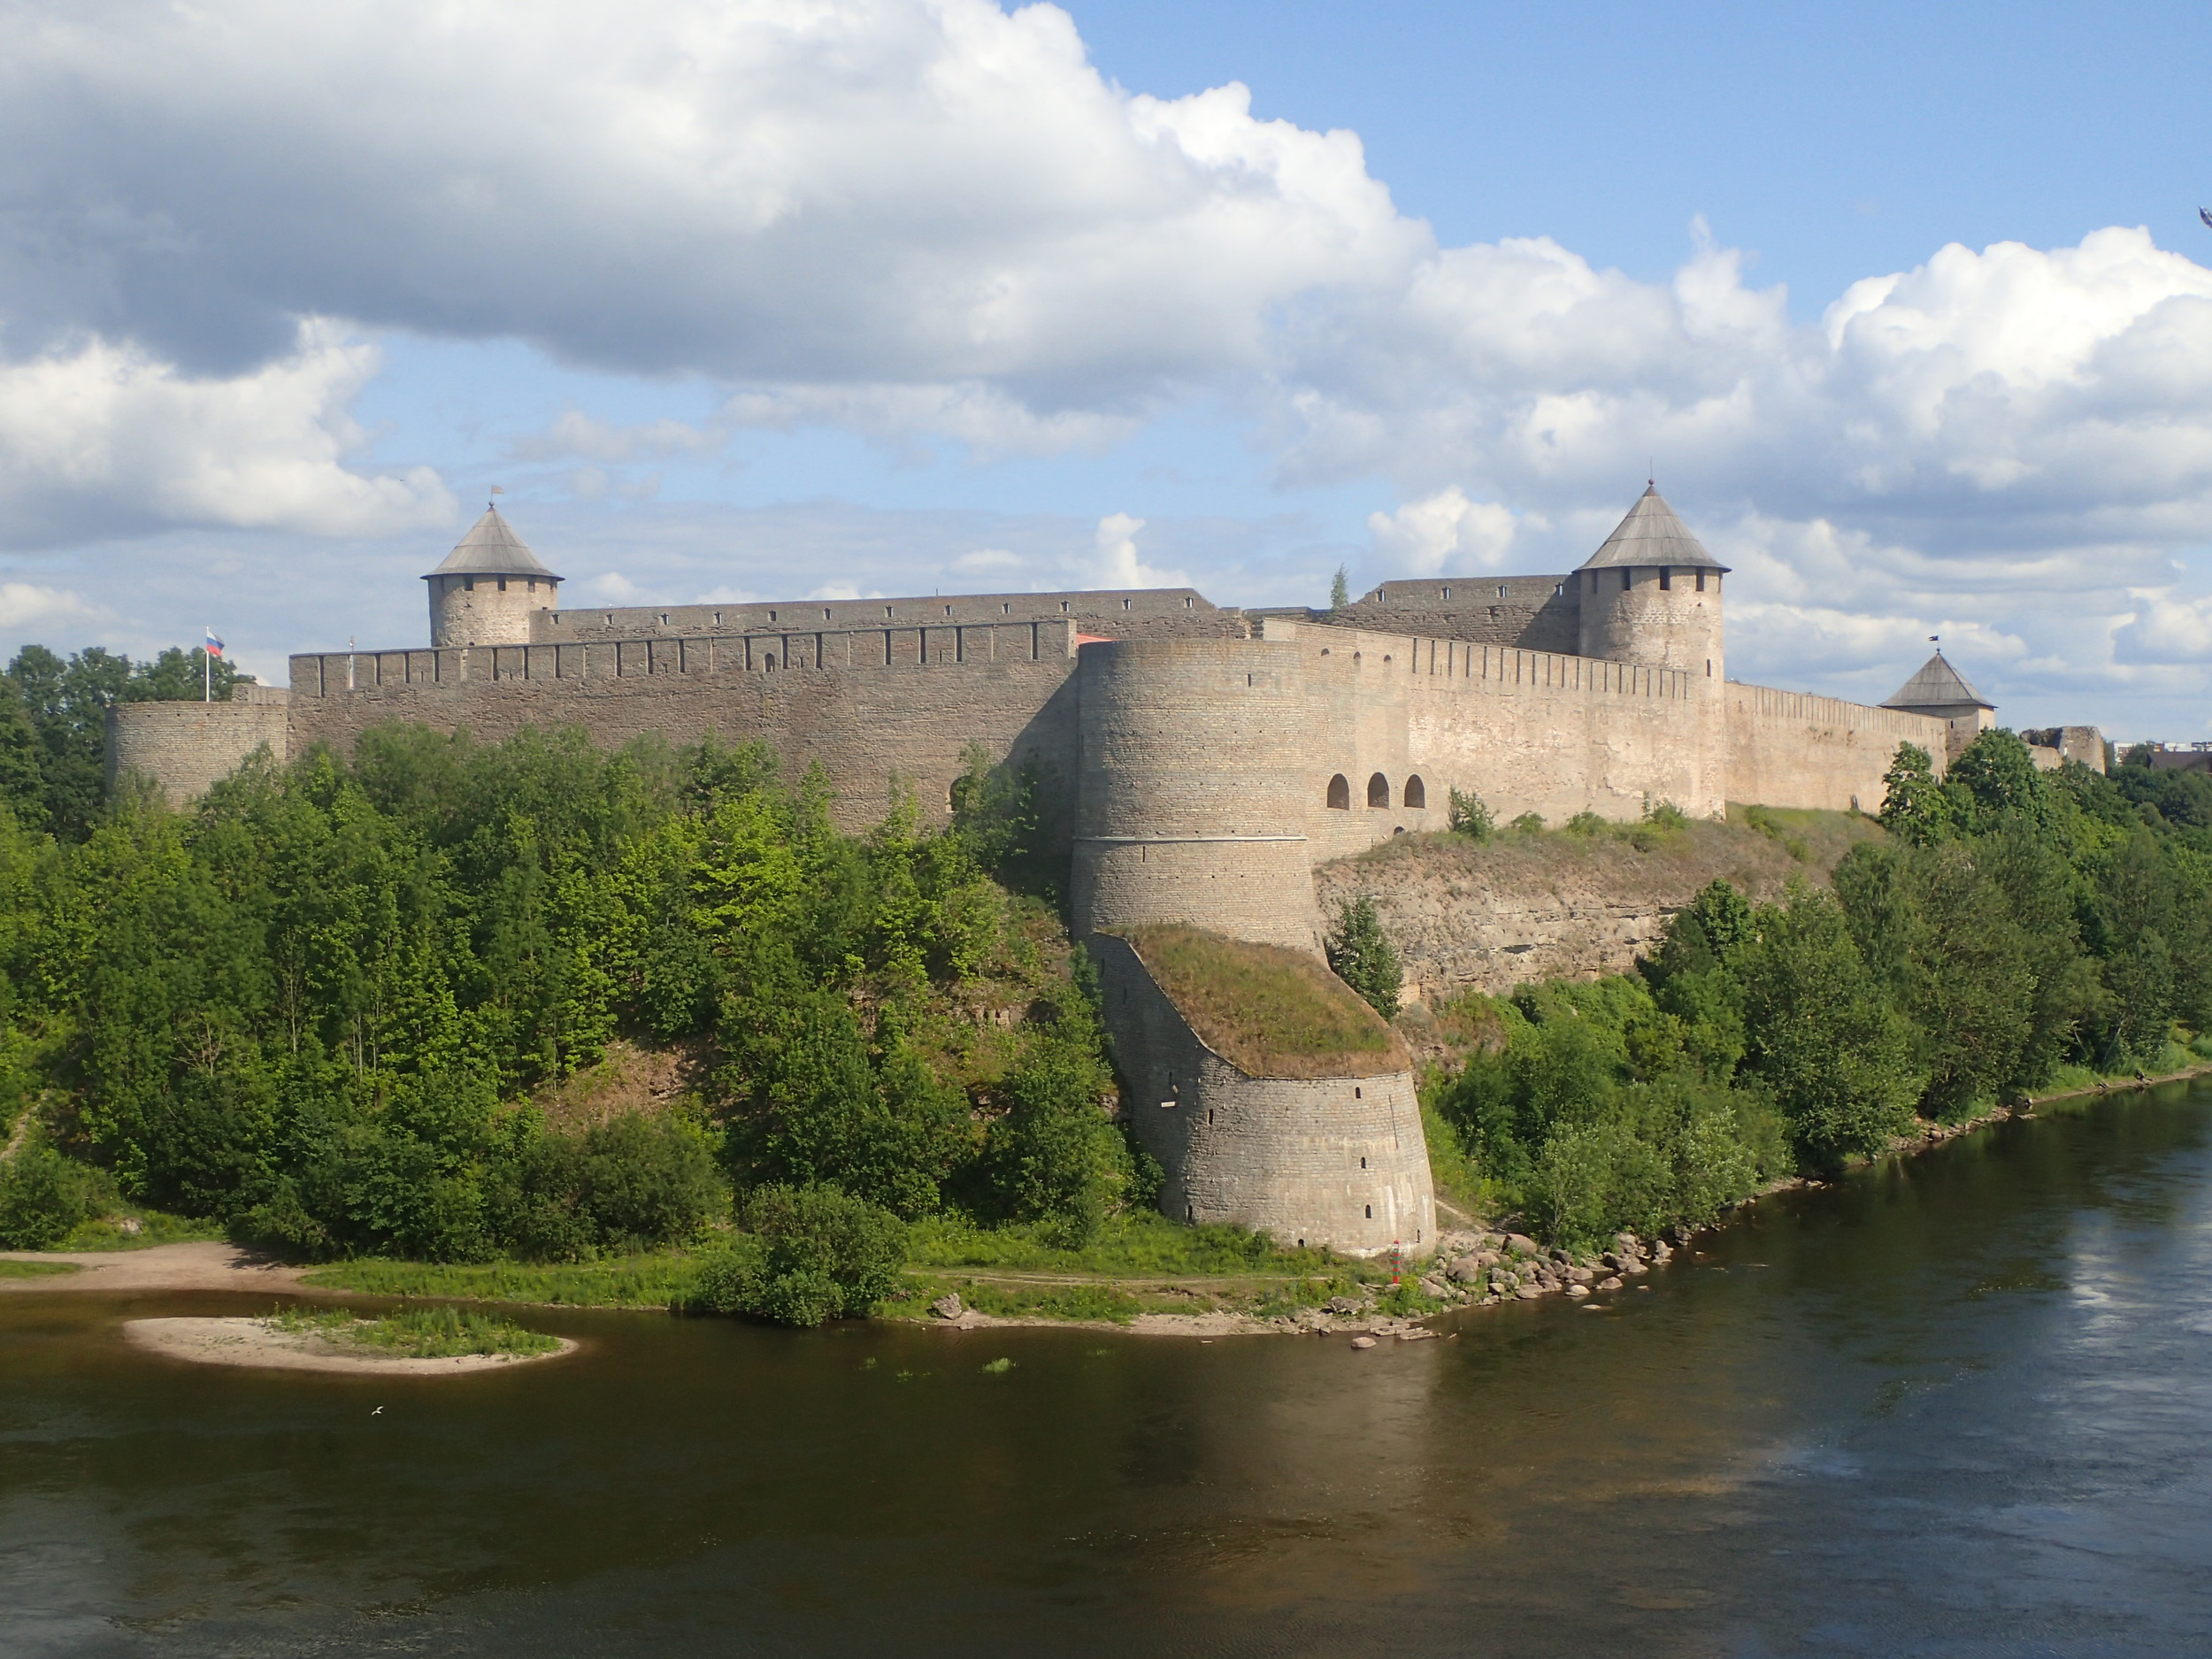 Ivangorod Fortress established by  Ivan III  in 1492 (Russia).